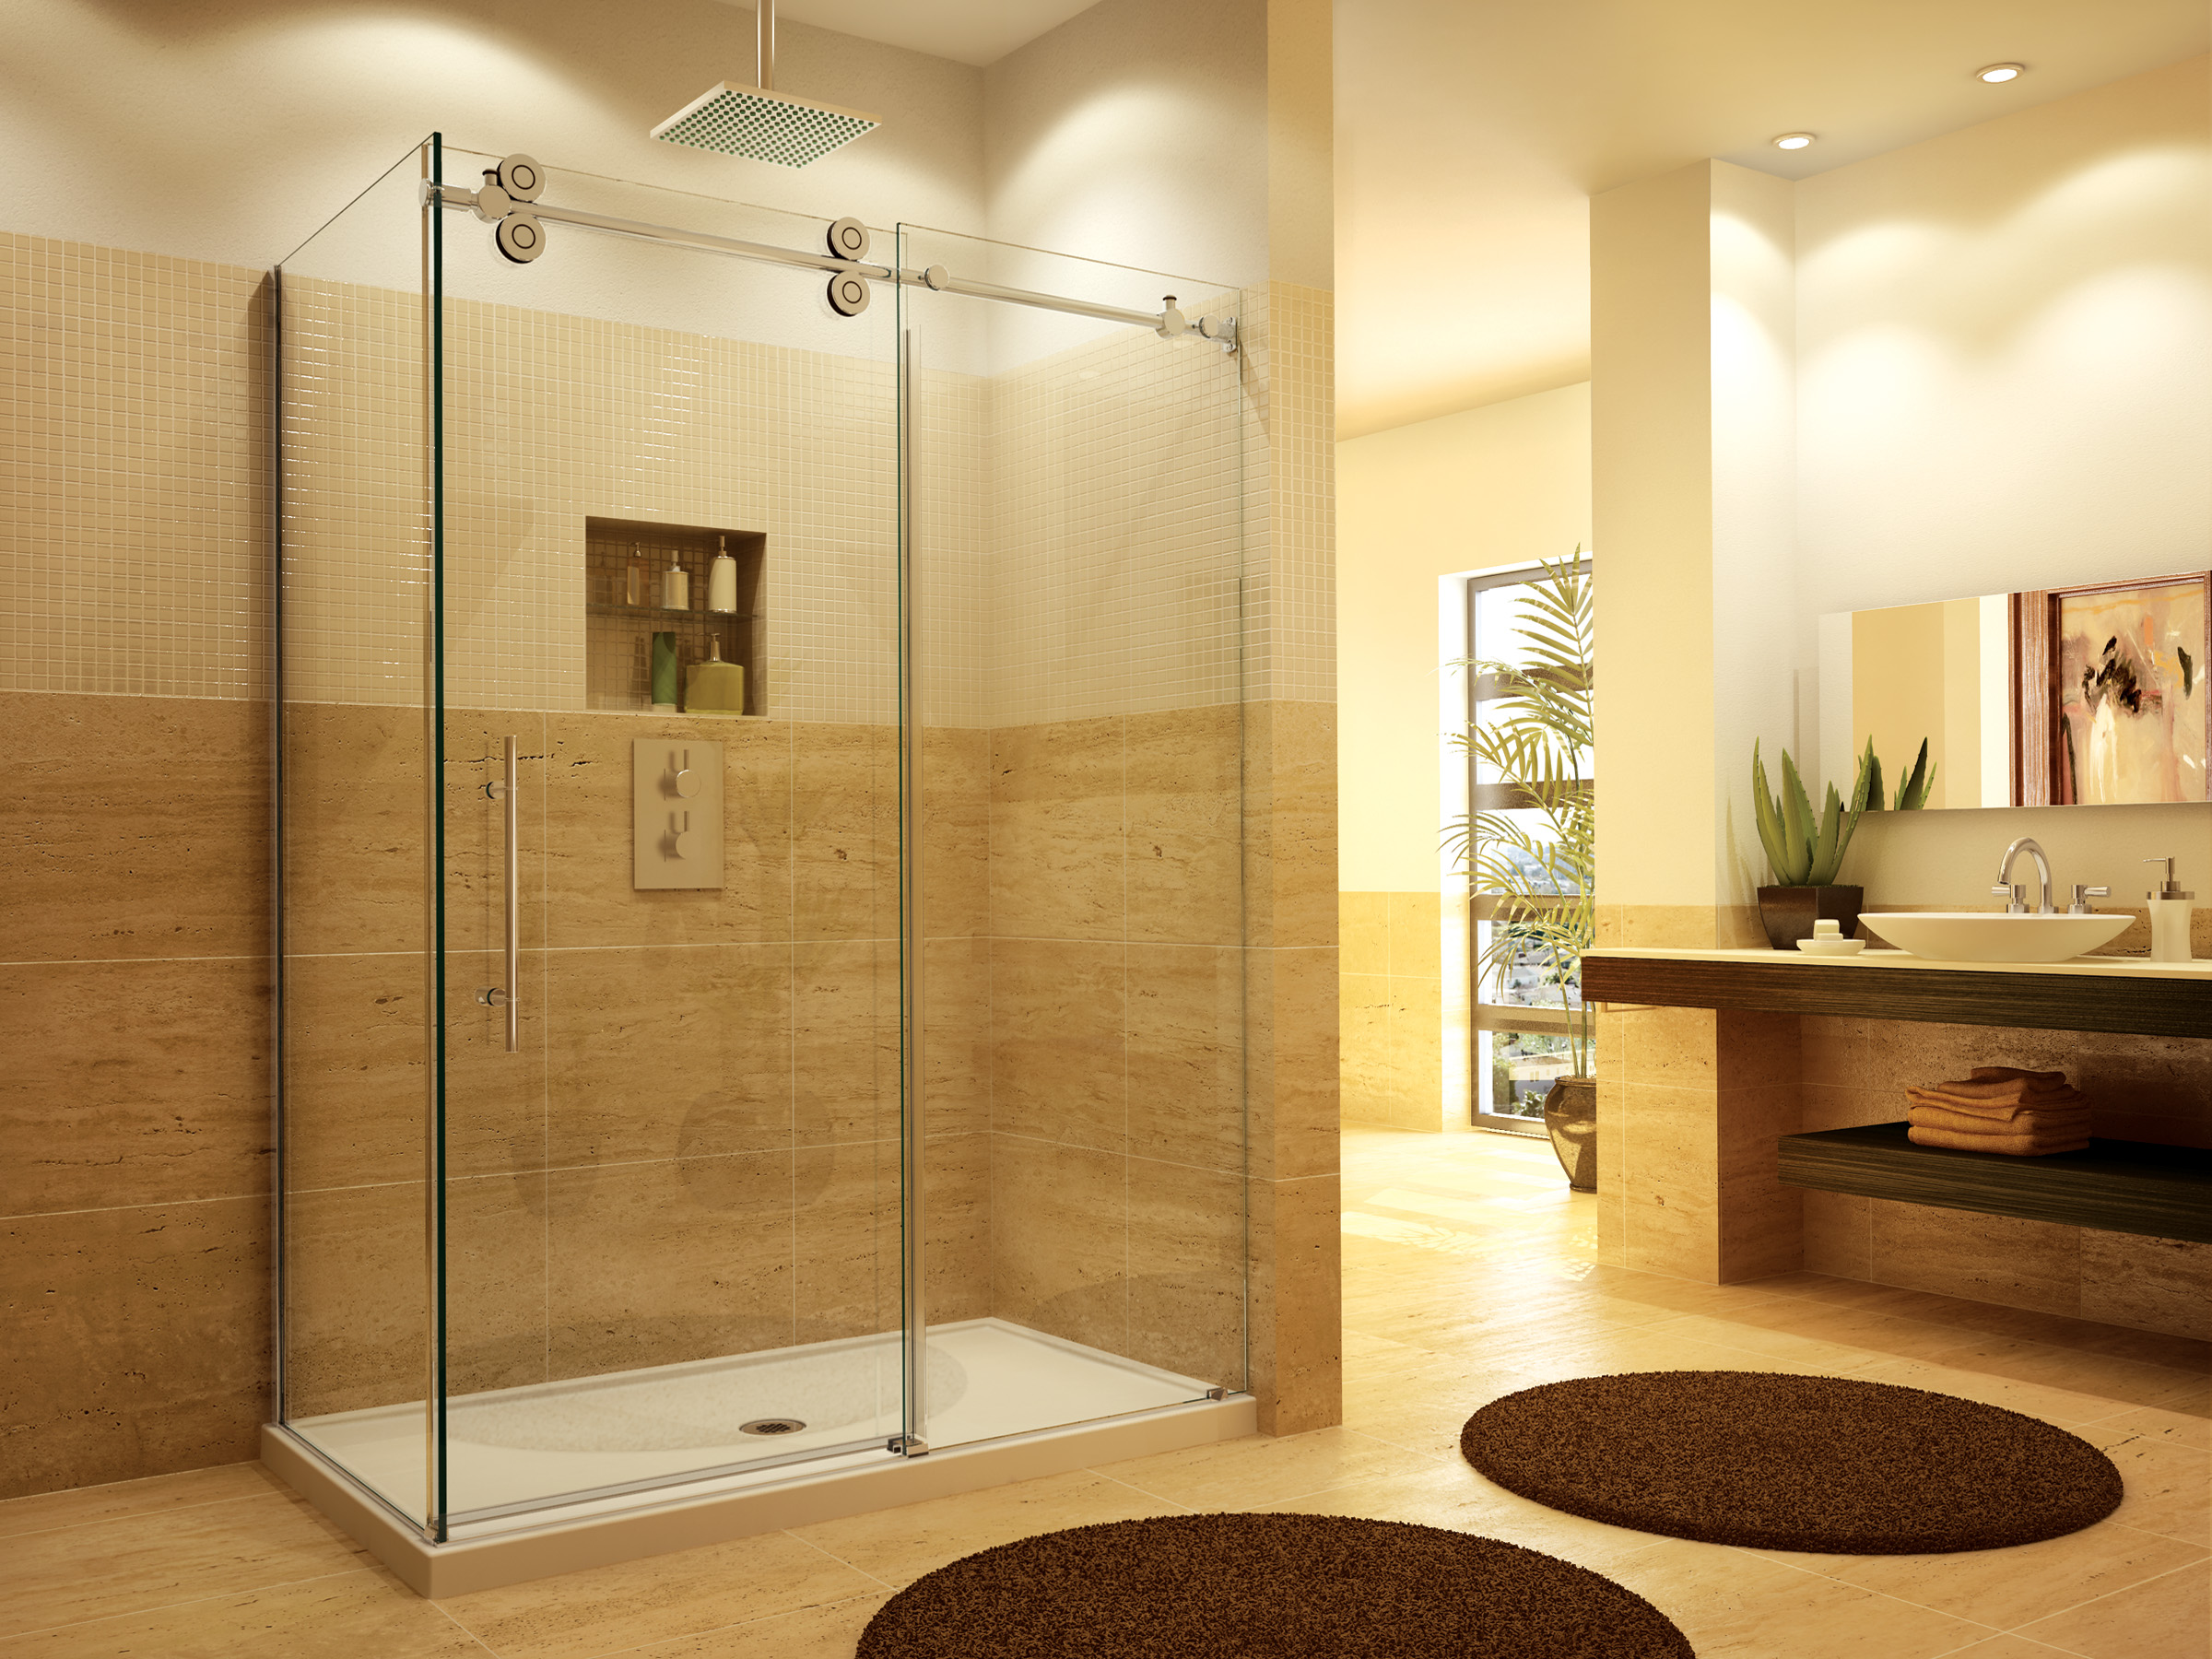 Glass Shower Door Installation in Franklin Lakes | NJ Glass